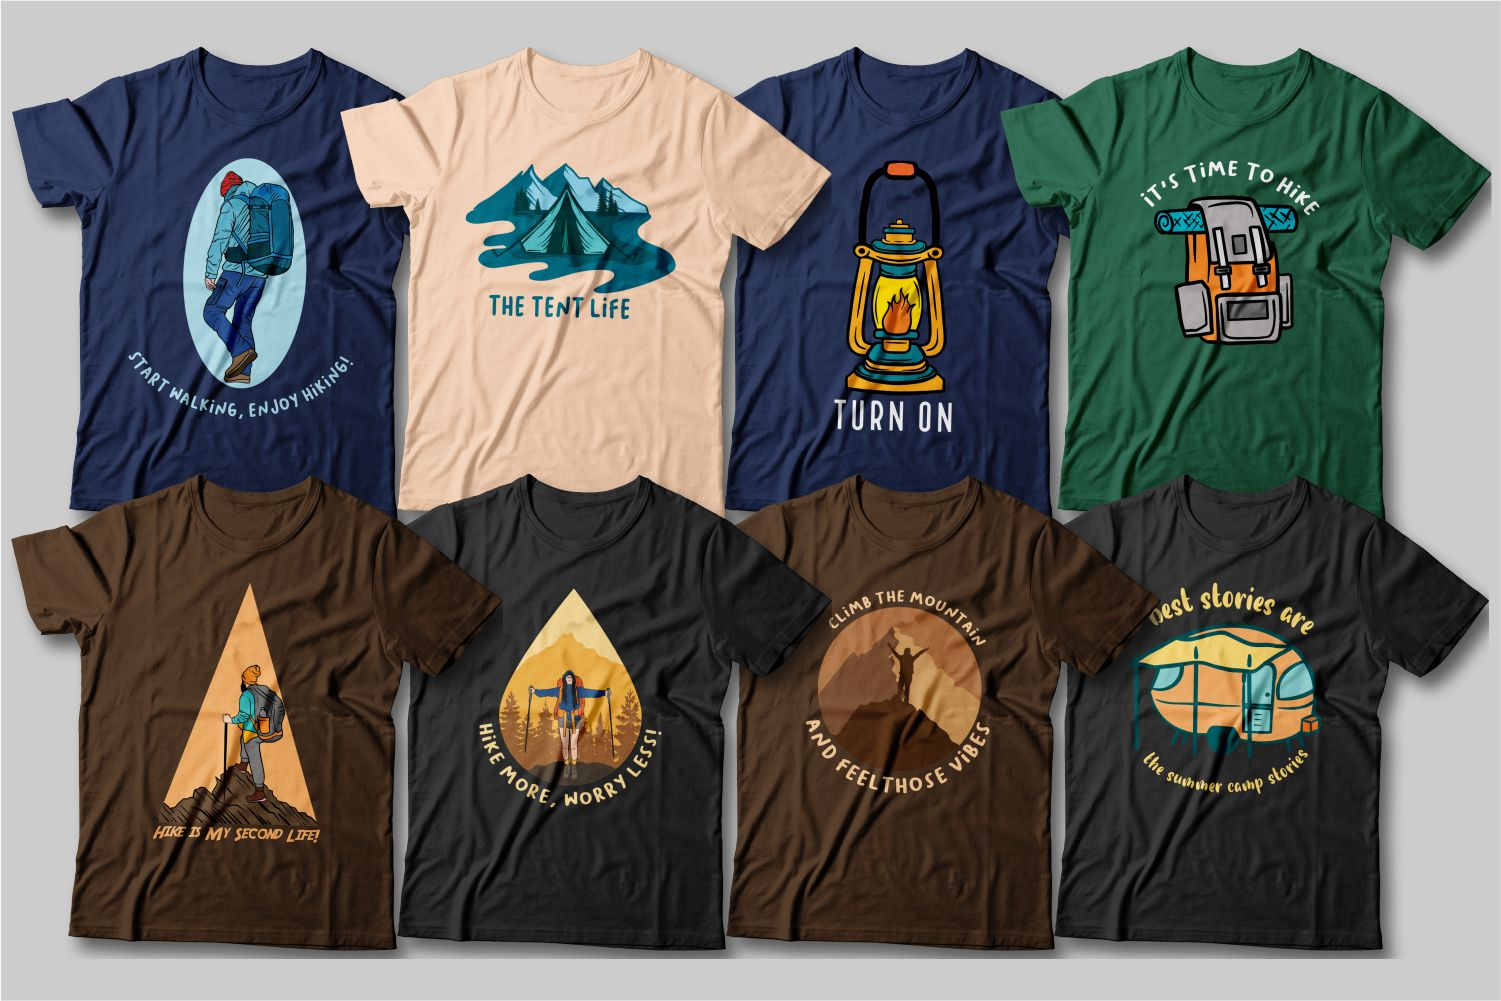 High-quality T-shirts with bright graphics for mountain lovers.